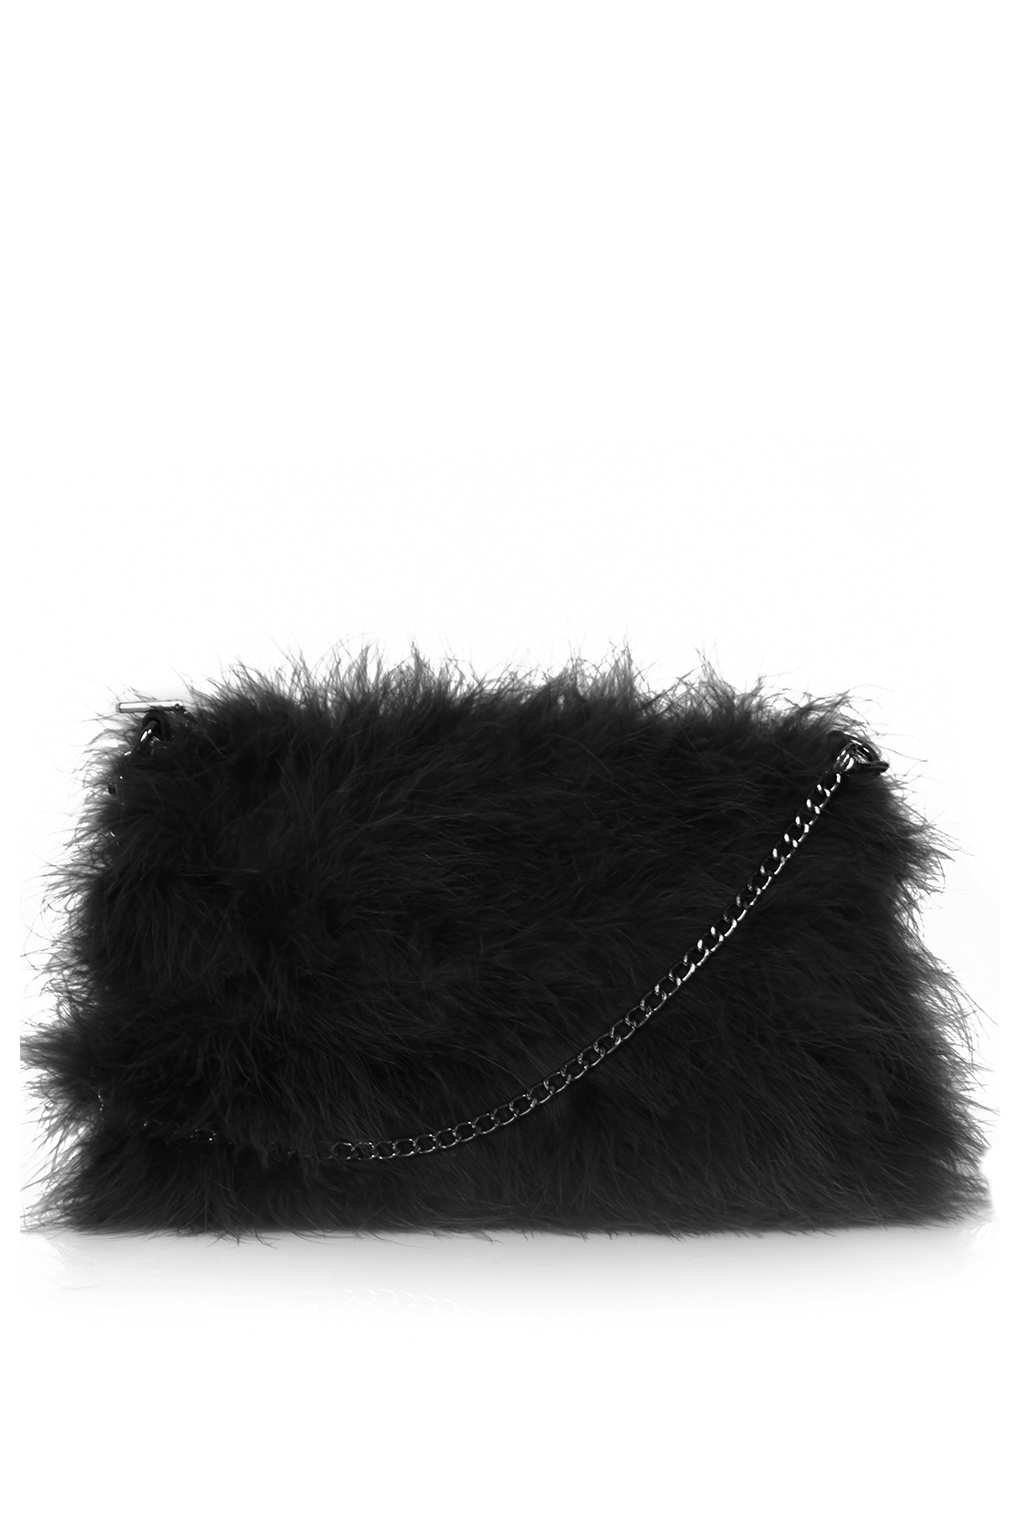 Topshop Marabou Feather Bag In Black Lyst